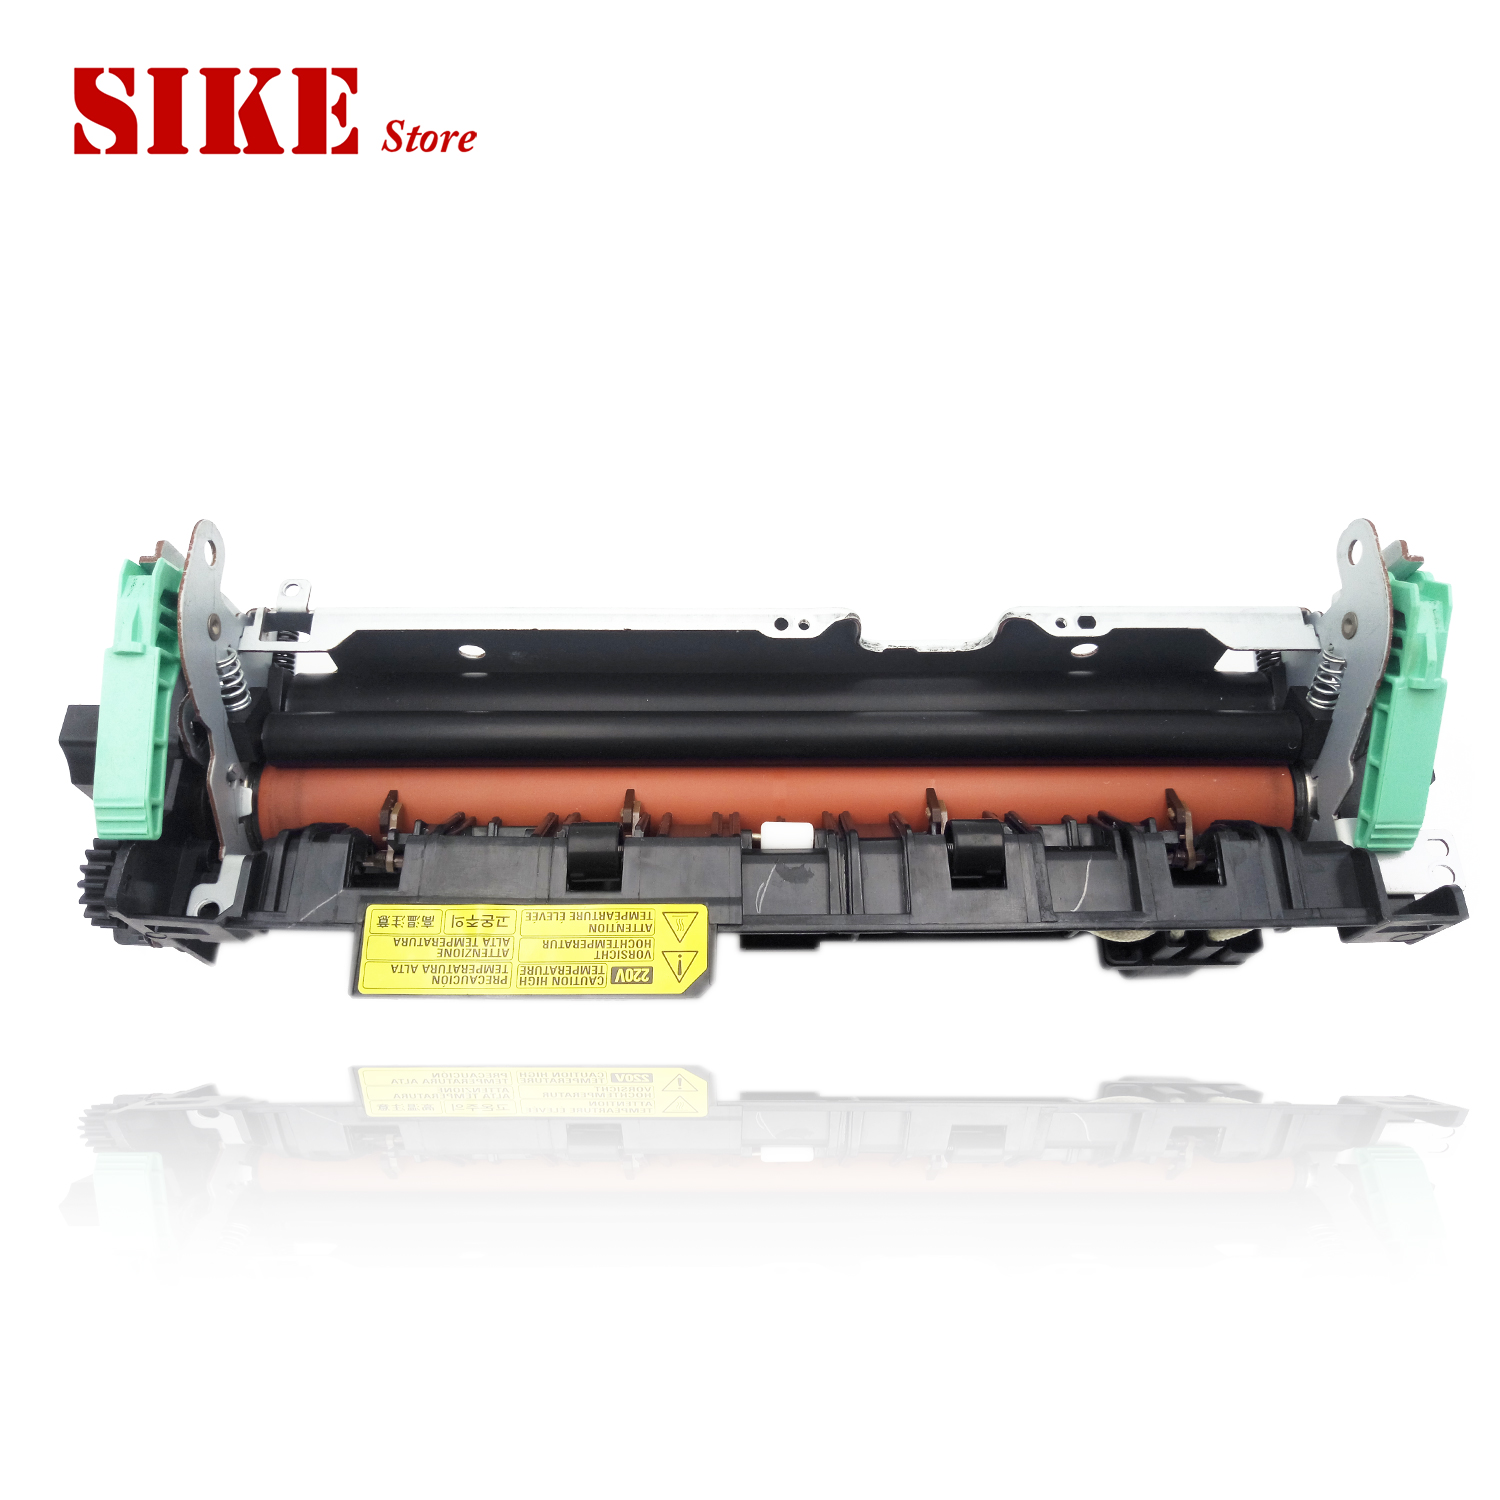 Fuser Unit Assy For Samsung M3320ND M3325ND M3320 M3325 3320 3325 Fuser Assembly JC91-01023A JC91-01024AFuser Unit Assy For Samsung M3320ND M3325ND M3320 M3325 3320 3325 Fuser Assembly JC91-01023A JC91-01024A